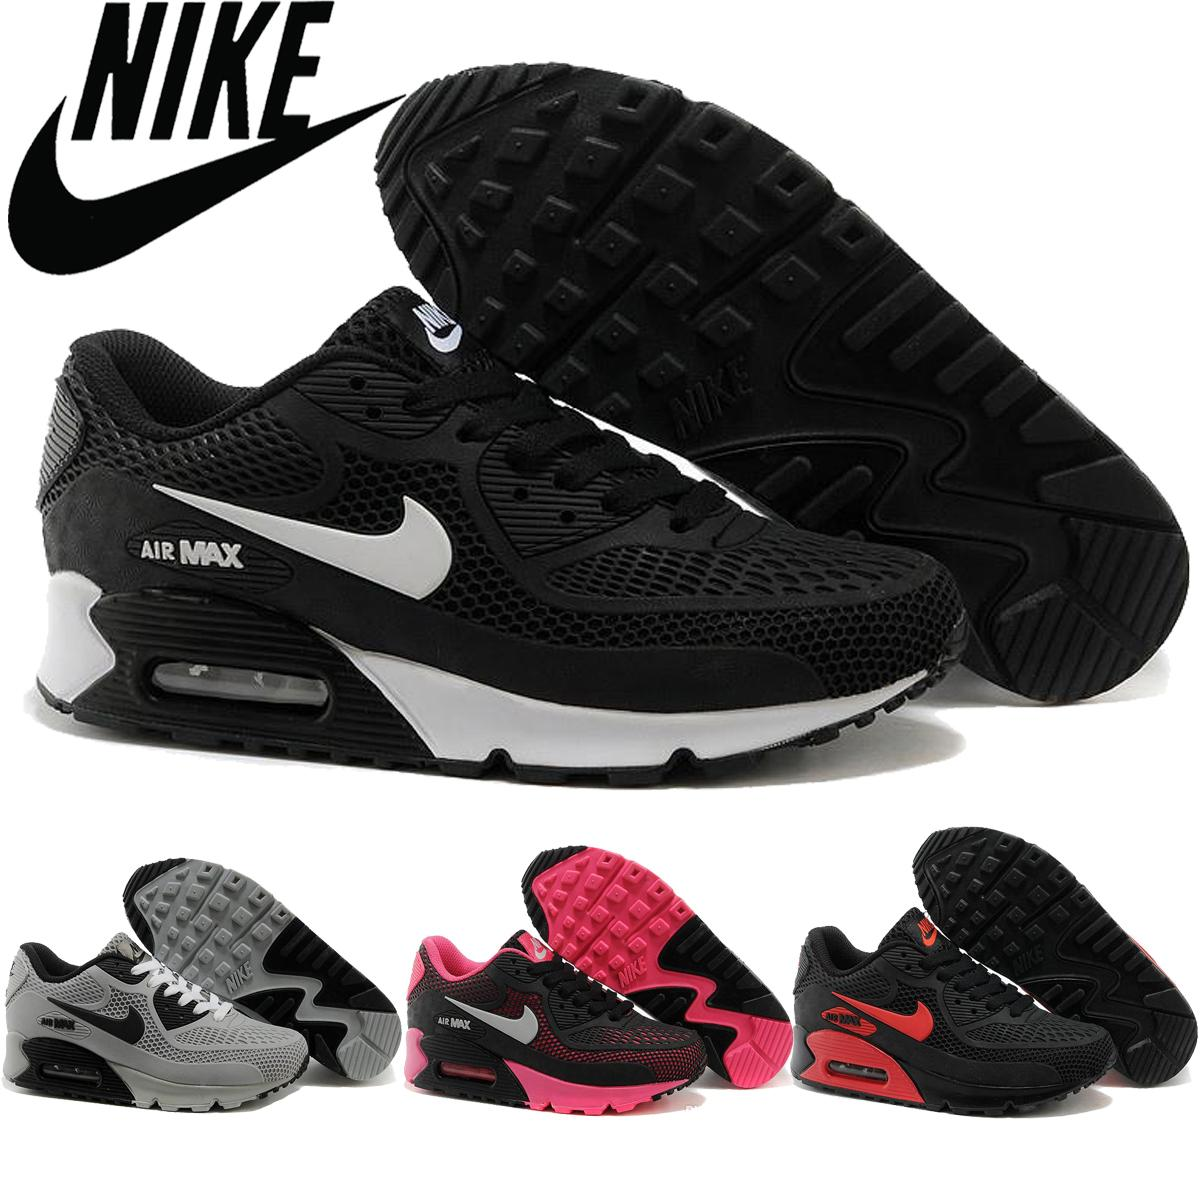 the latest 7d5c3 a1e5e Nike Air Max 90 Kpu Running Shoes For Men, Top Quality Athletic Air Max 90  Hyperfuse Outdoor Sport Sneakers Eur 40 45 New Arrival Trail Shoes Shoes  Running ...